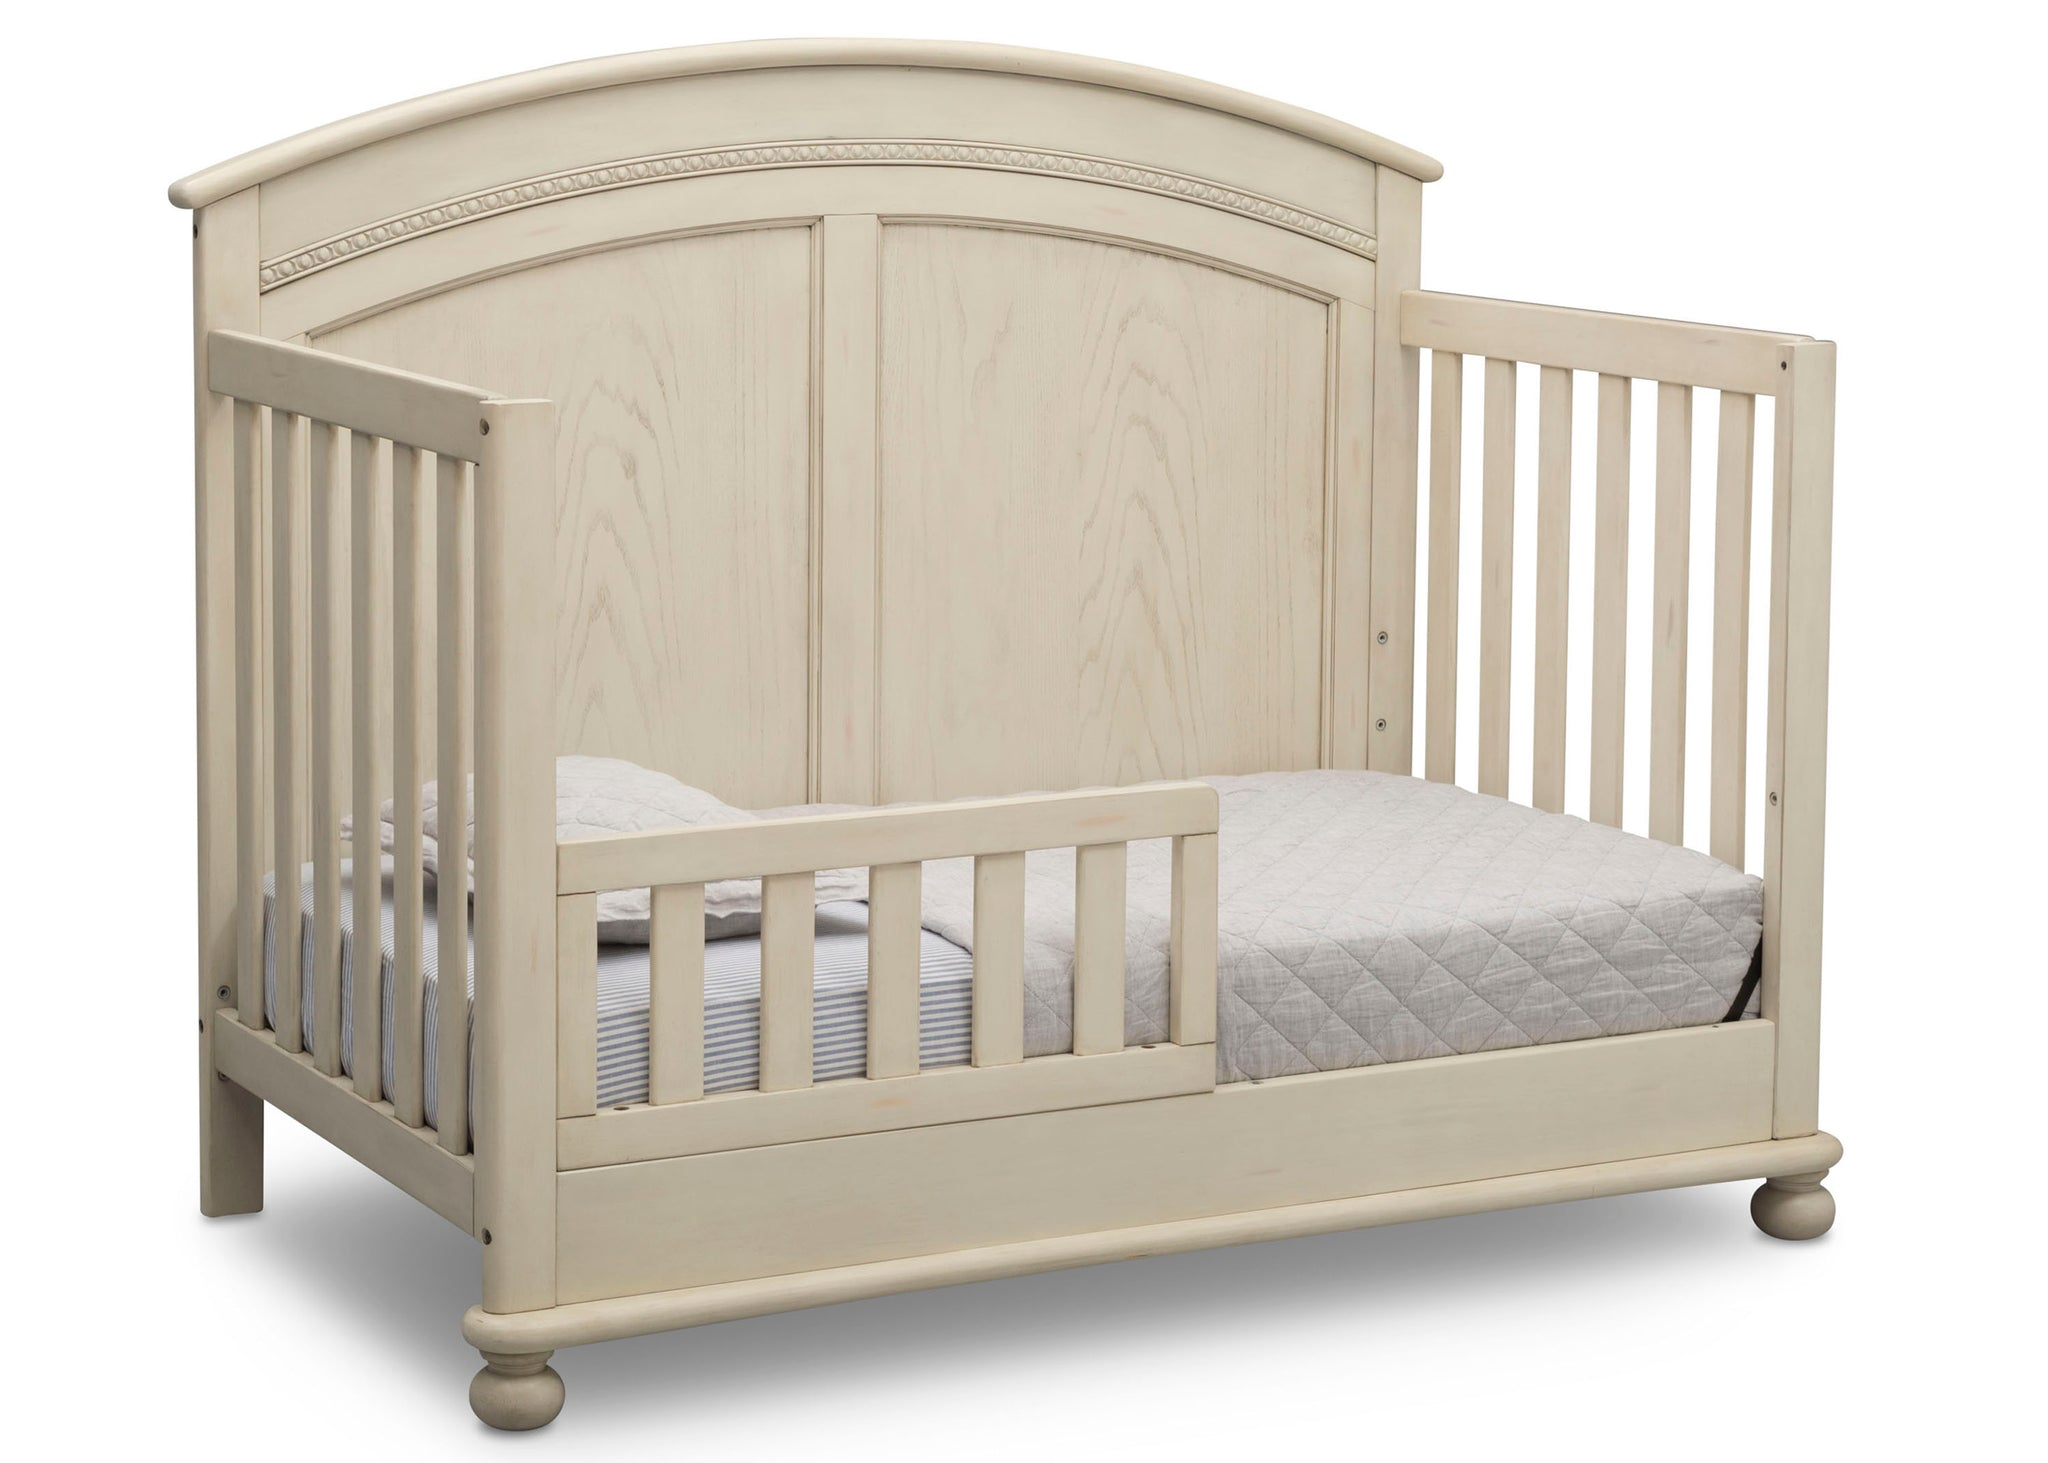 Simmons Kids Antique White (122) Ainsworth 4-in-1 Convertible Crib (W337250), Toddler Bed Conversion, a4a